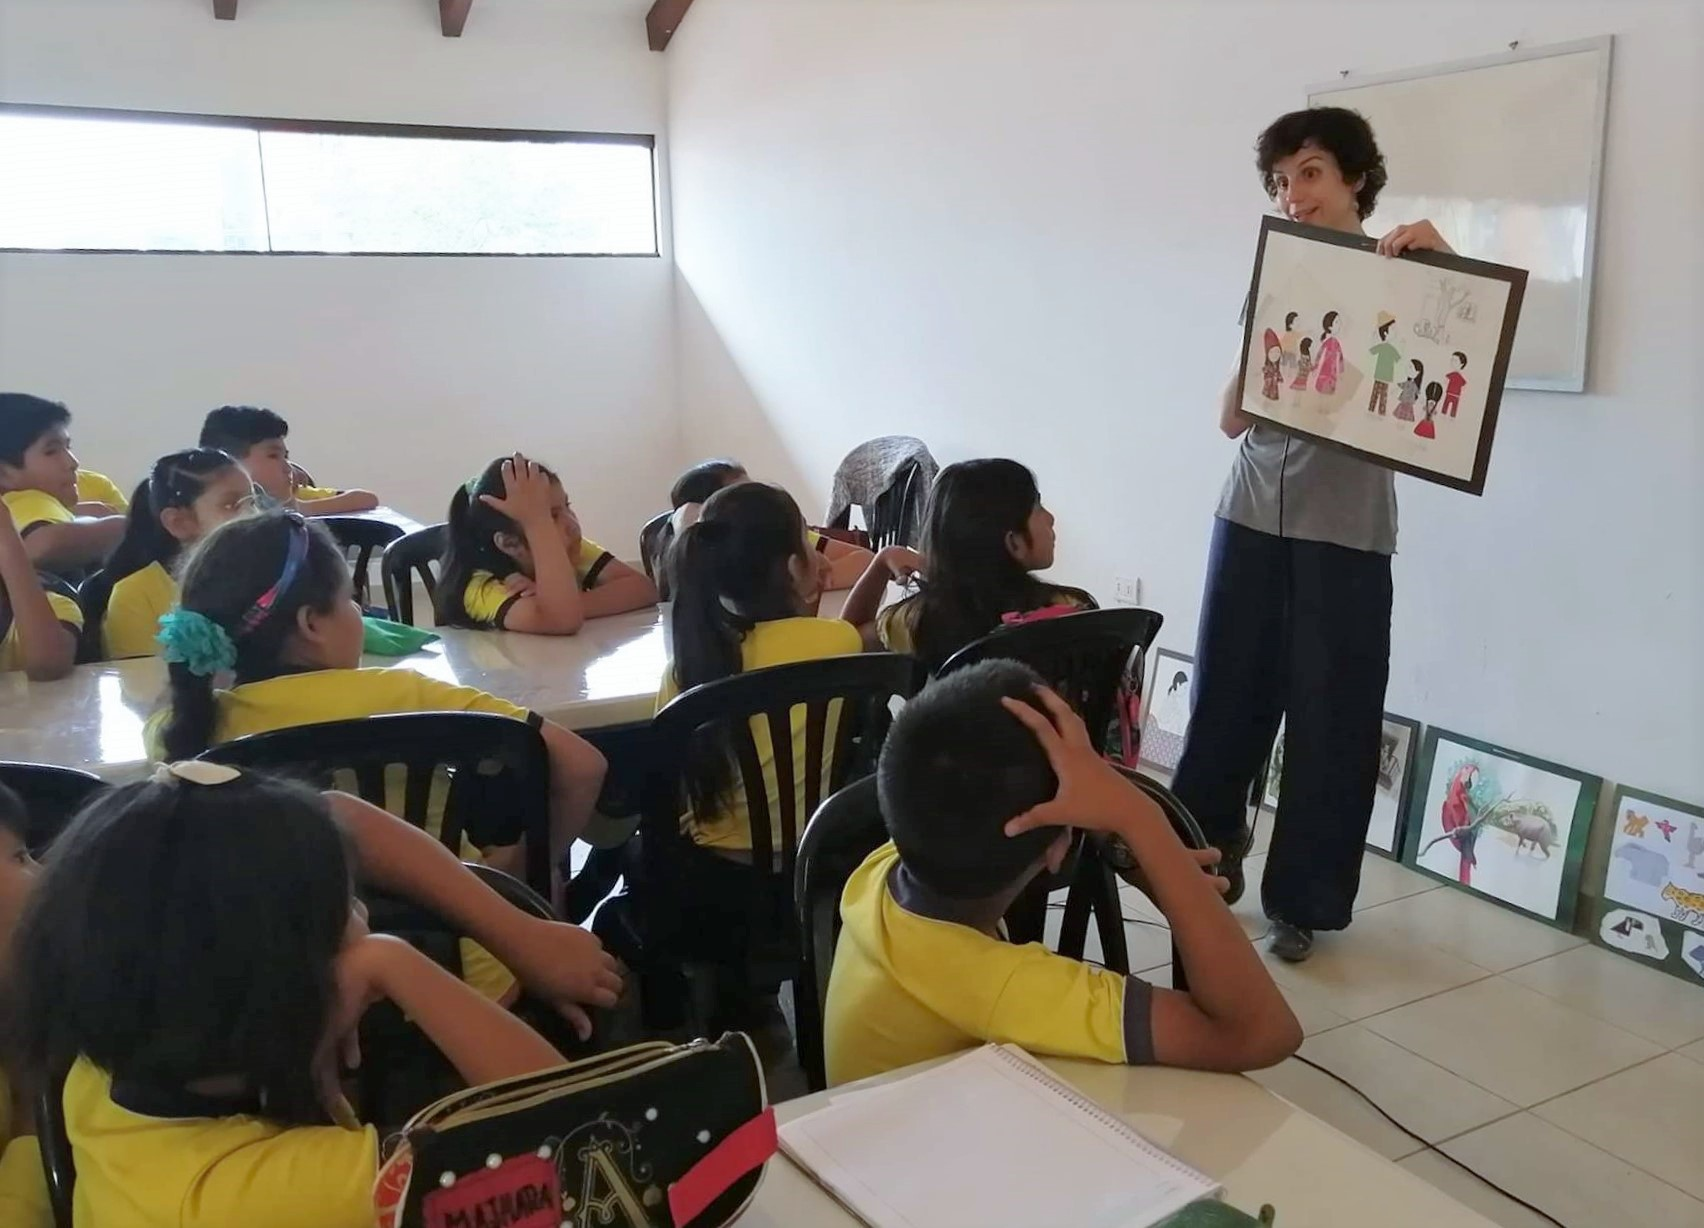 CIWY works with schools across Bolivia to offer environmental education